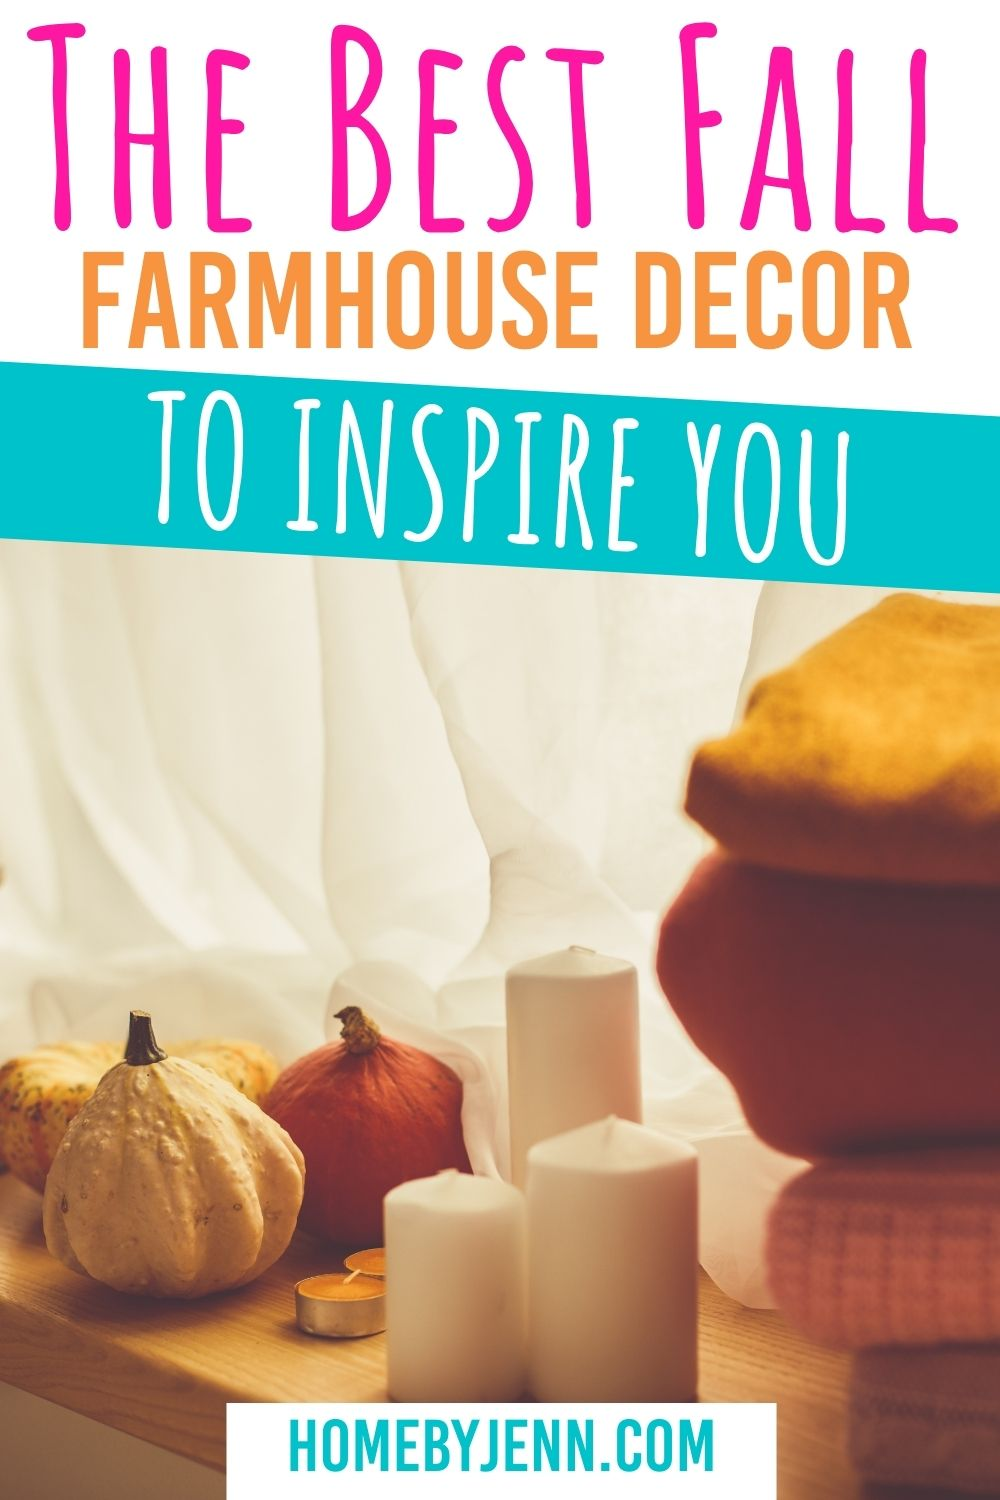 When decorating fall is one of my favorites because of the colors, textures, and all around warm feeling that the fall decor provides. In this post, I'm sharing over 30 different fall farmhouse decor ideas to help you with this fall. #falldecor #fallfarmhousedecor #decoratingforfall #falldecorating via @homebyjenn